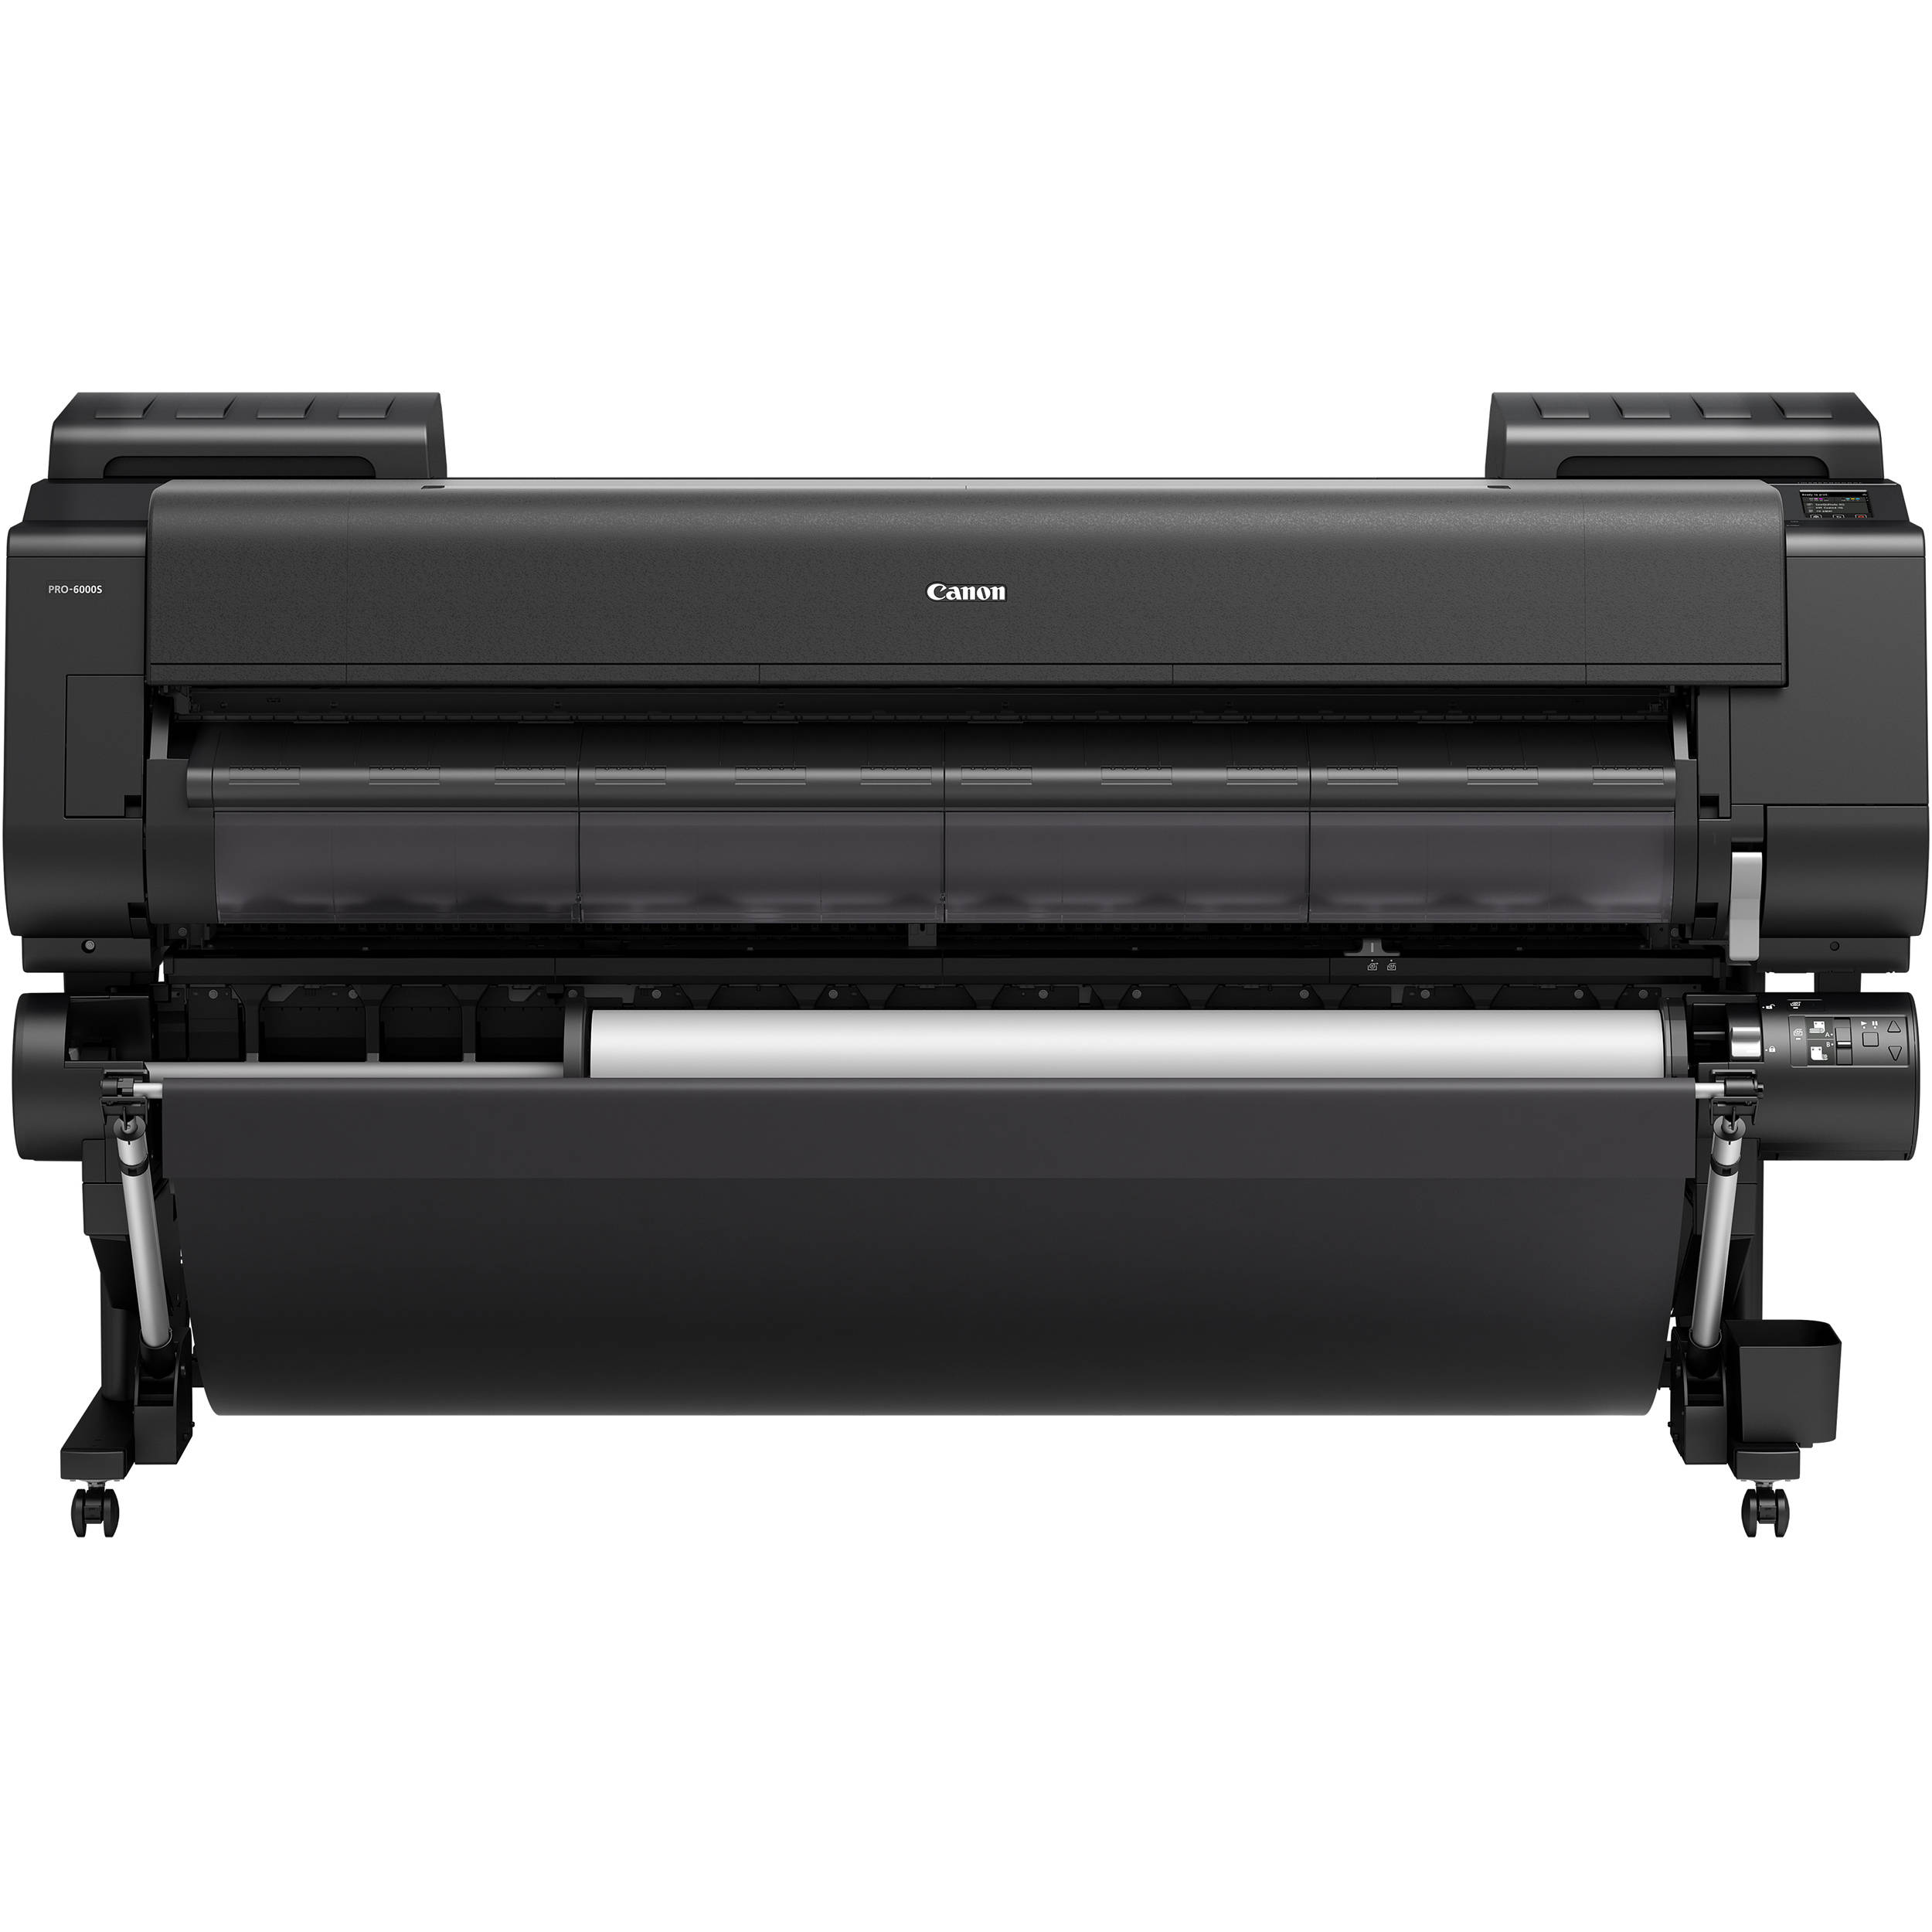 "Canon IPFPRO-6000S 60"" 8 COLOUR GRAPHIC ARTS PRODUCTION PRINTER WITH HDD"